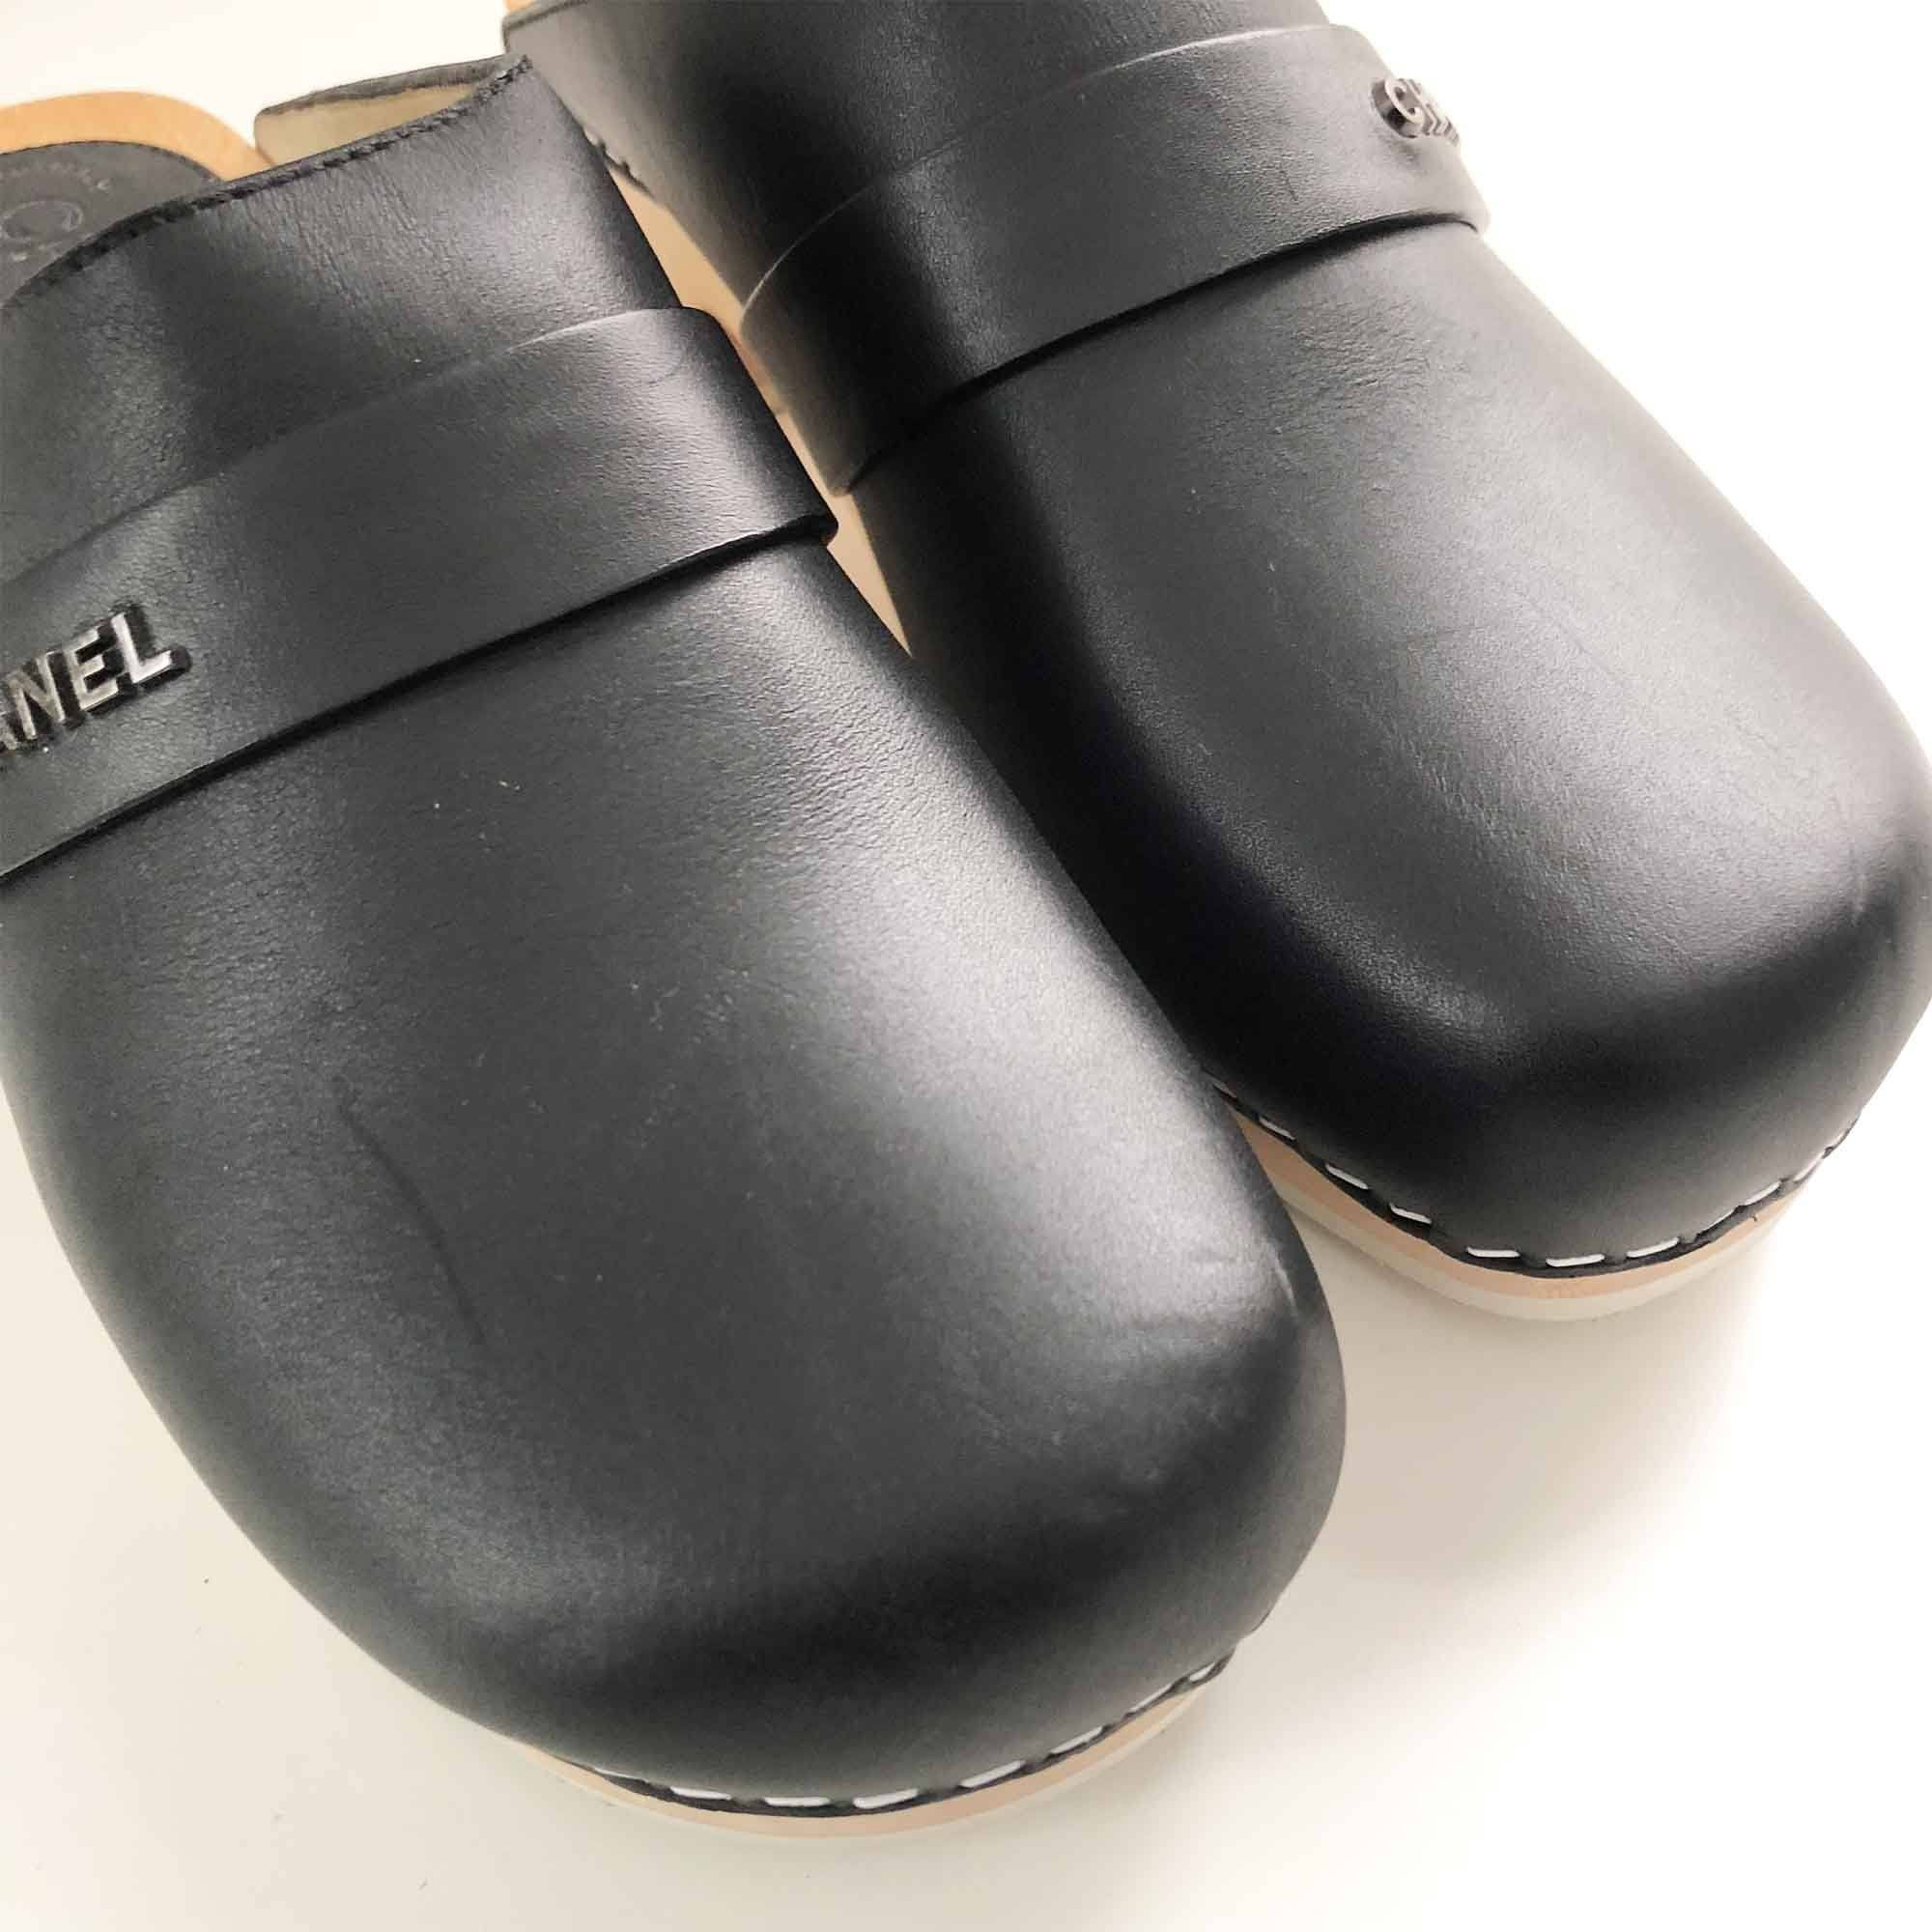 Chanel Black Leather Wooden Clogs